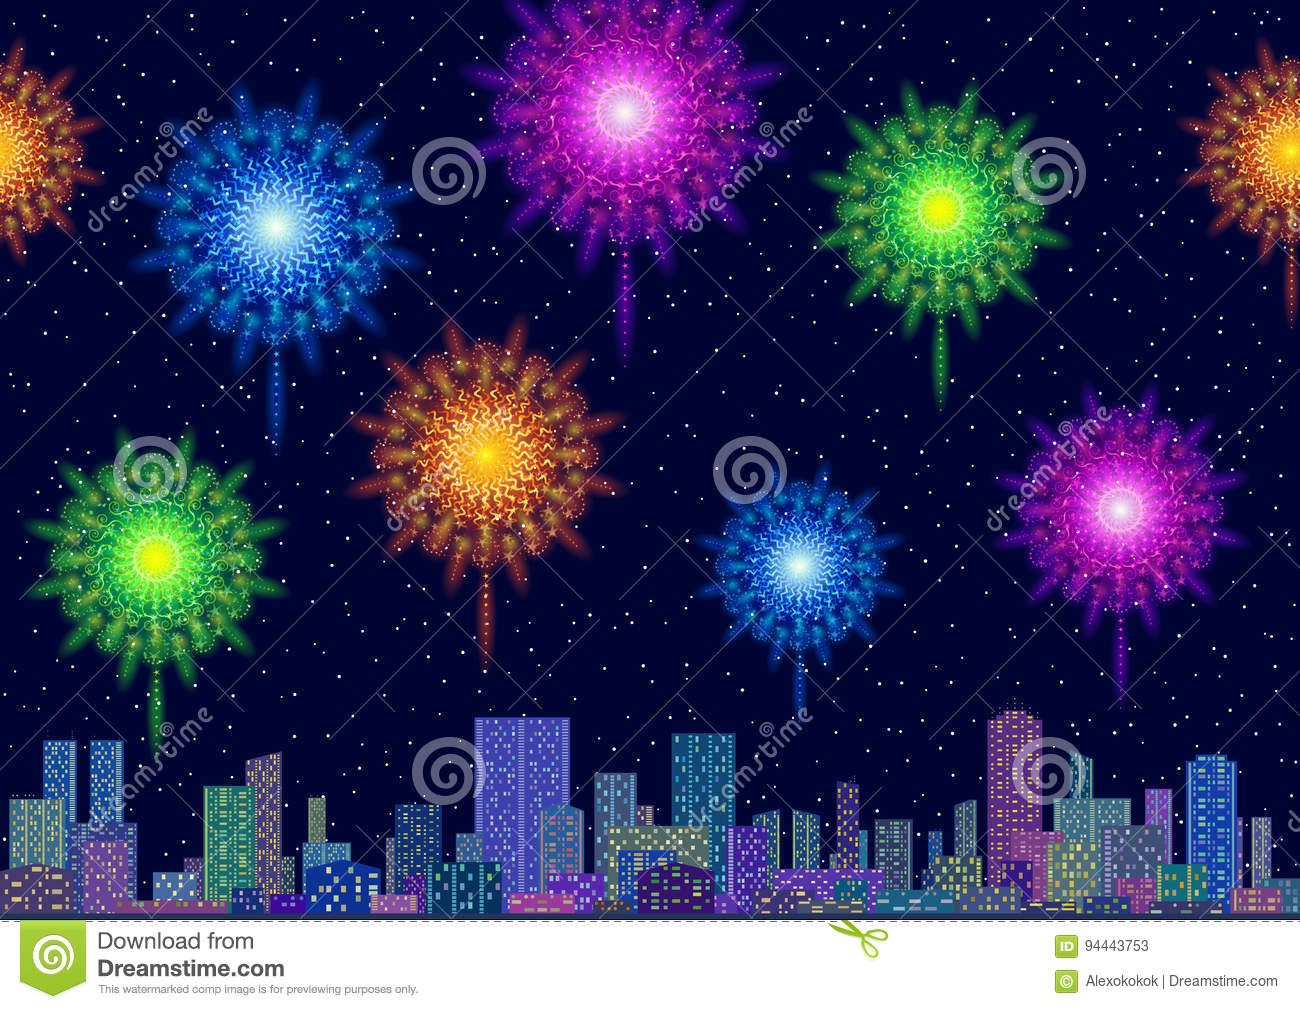 Wallpaper Salute Sky Holiday Colorful 3376x4220: City Landscape With Fireworks Stock Vector